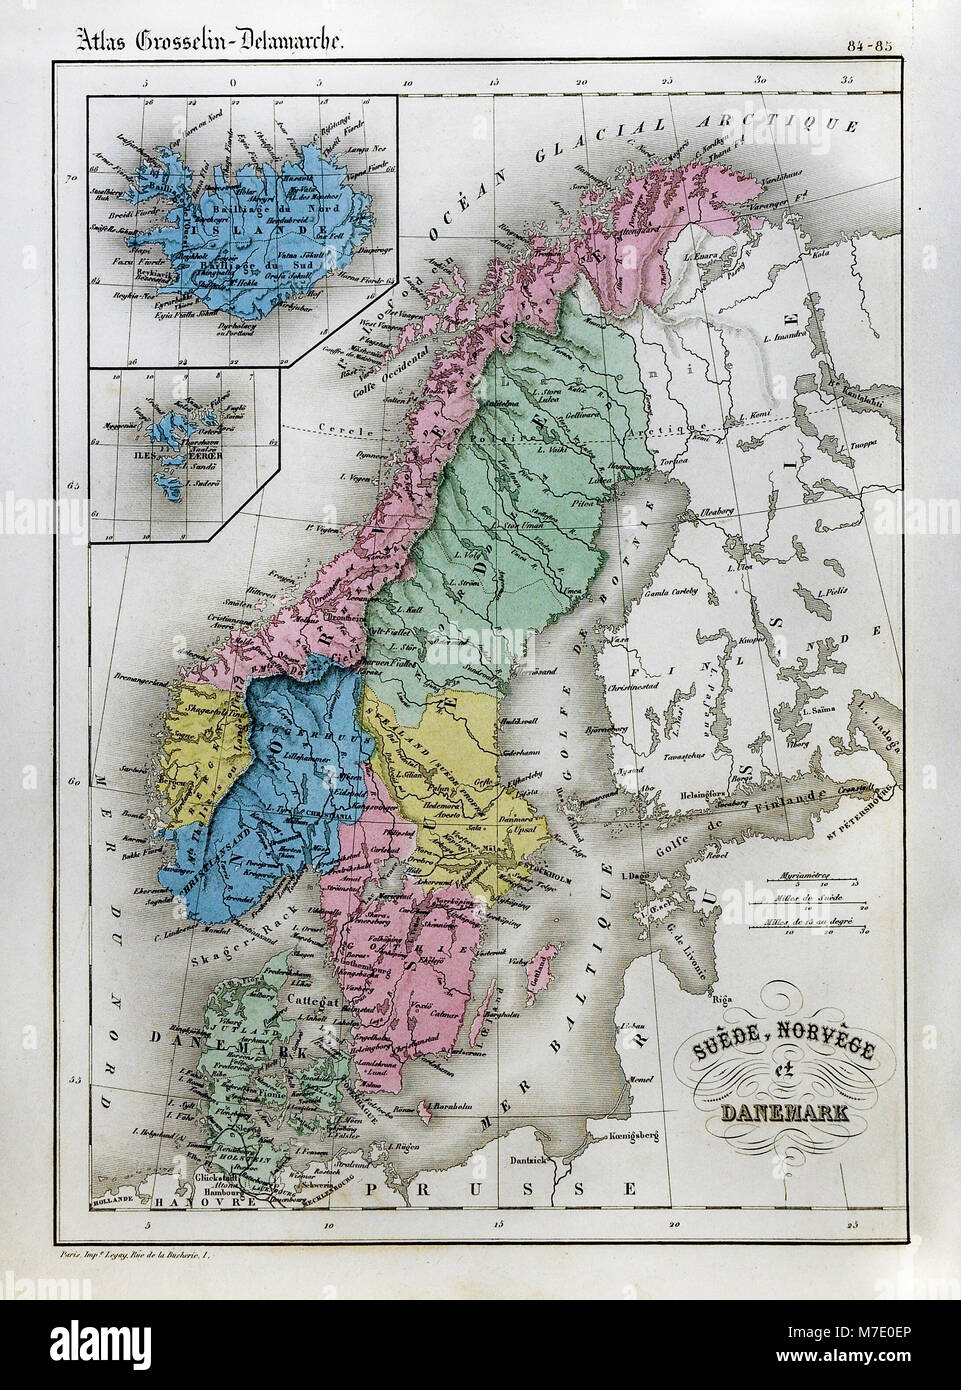 1858 Delamarche Map Scandinavia Europe Sweden Norway Denmark Stock Photo Alamy